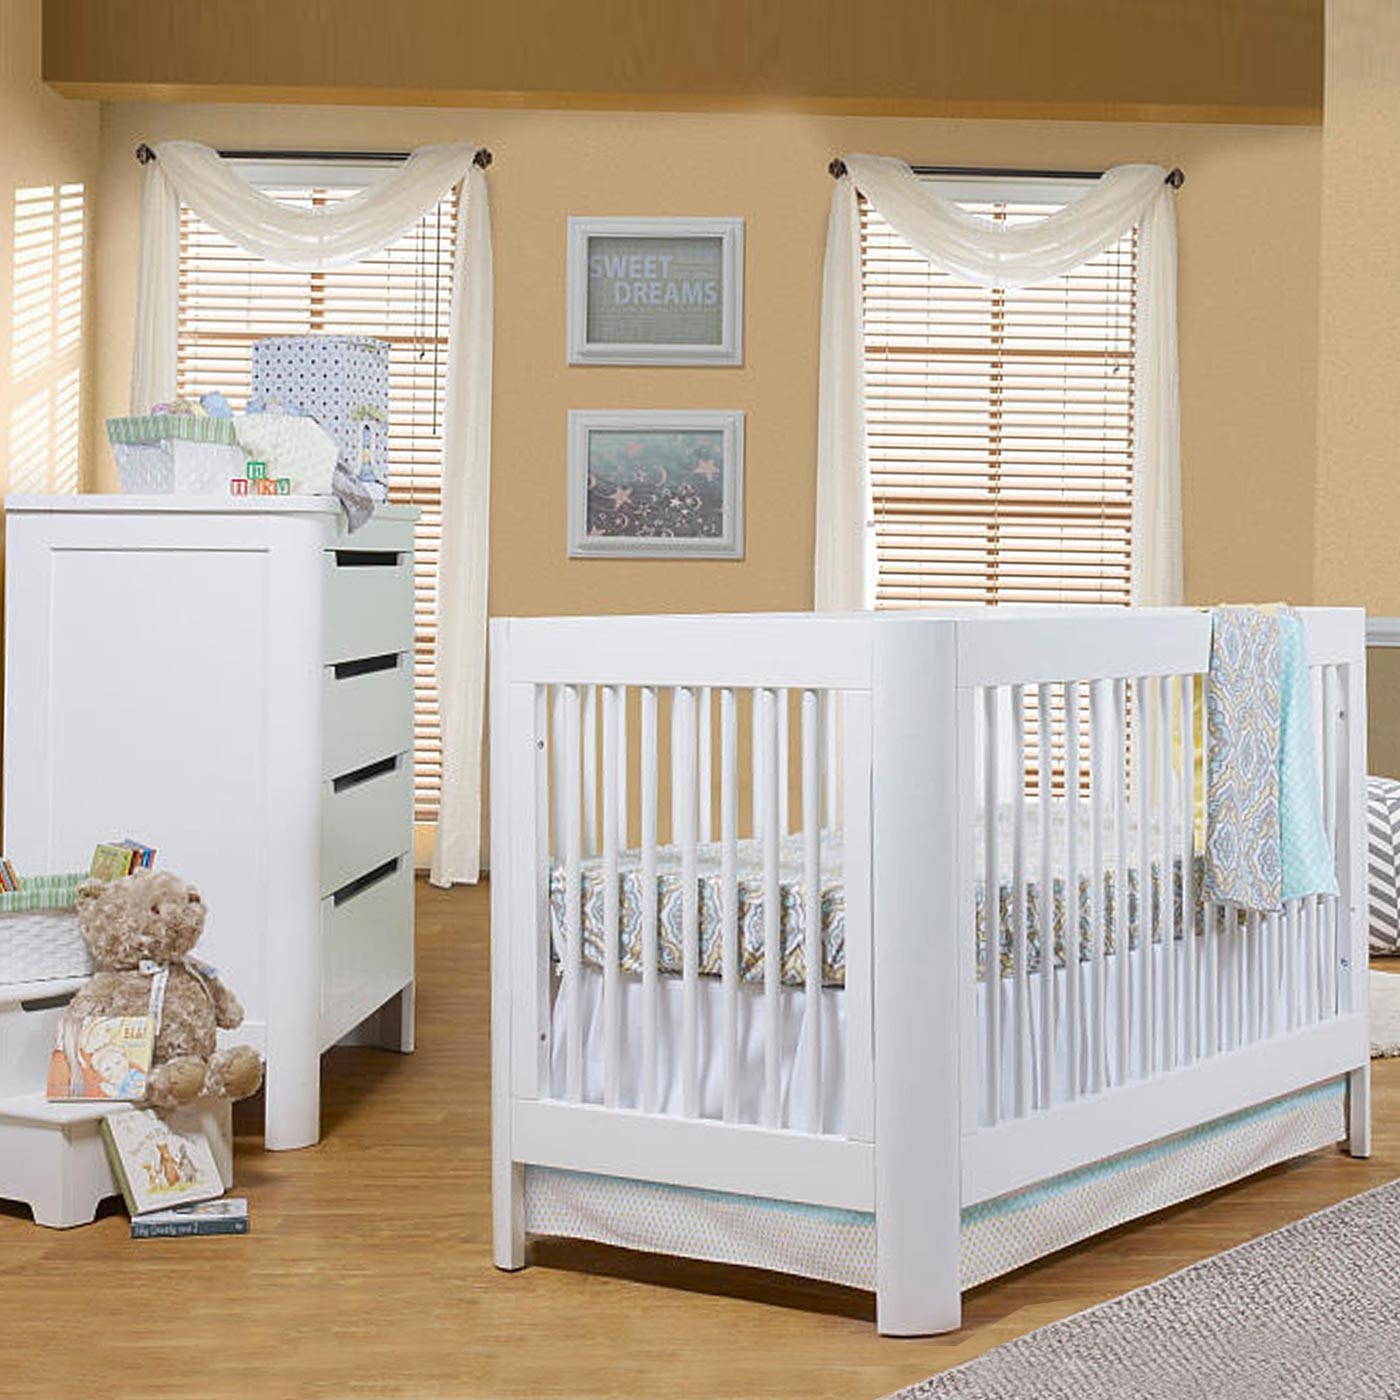 Sorelle 4 In 1 Convertible Crib And Changer Sorelle